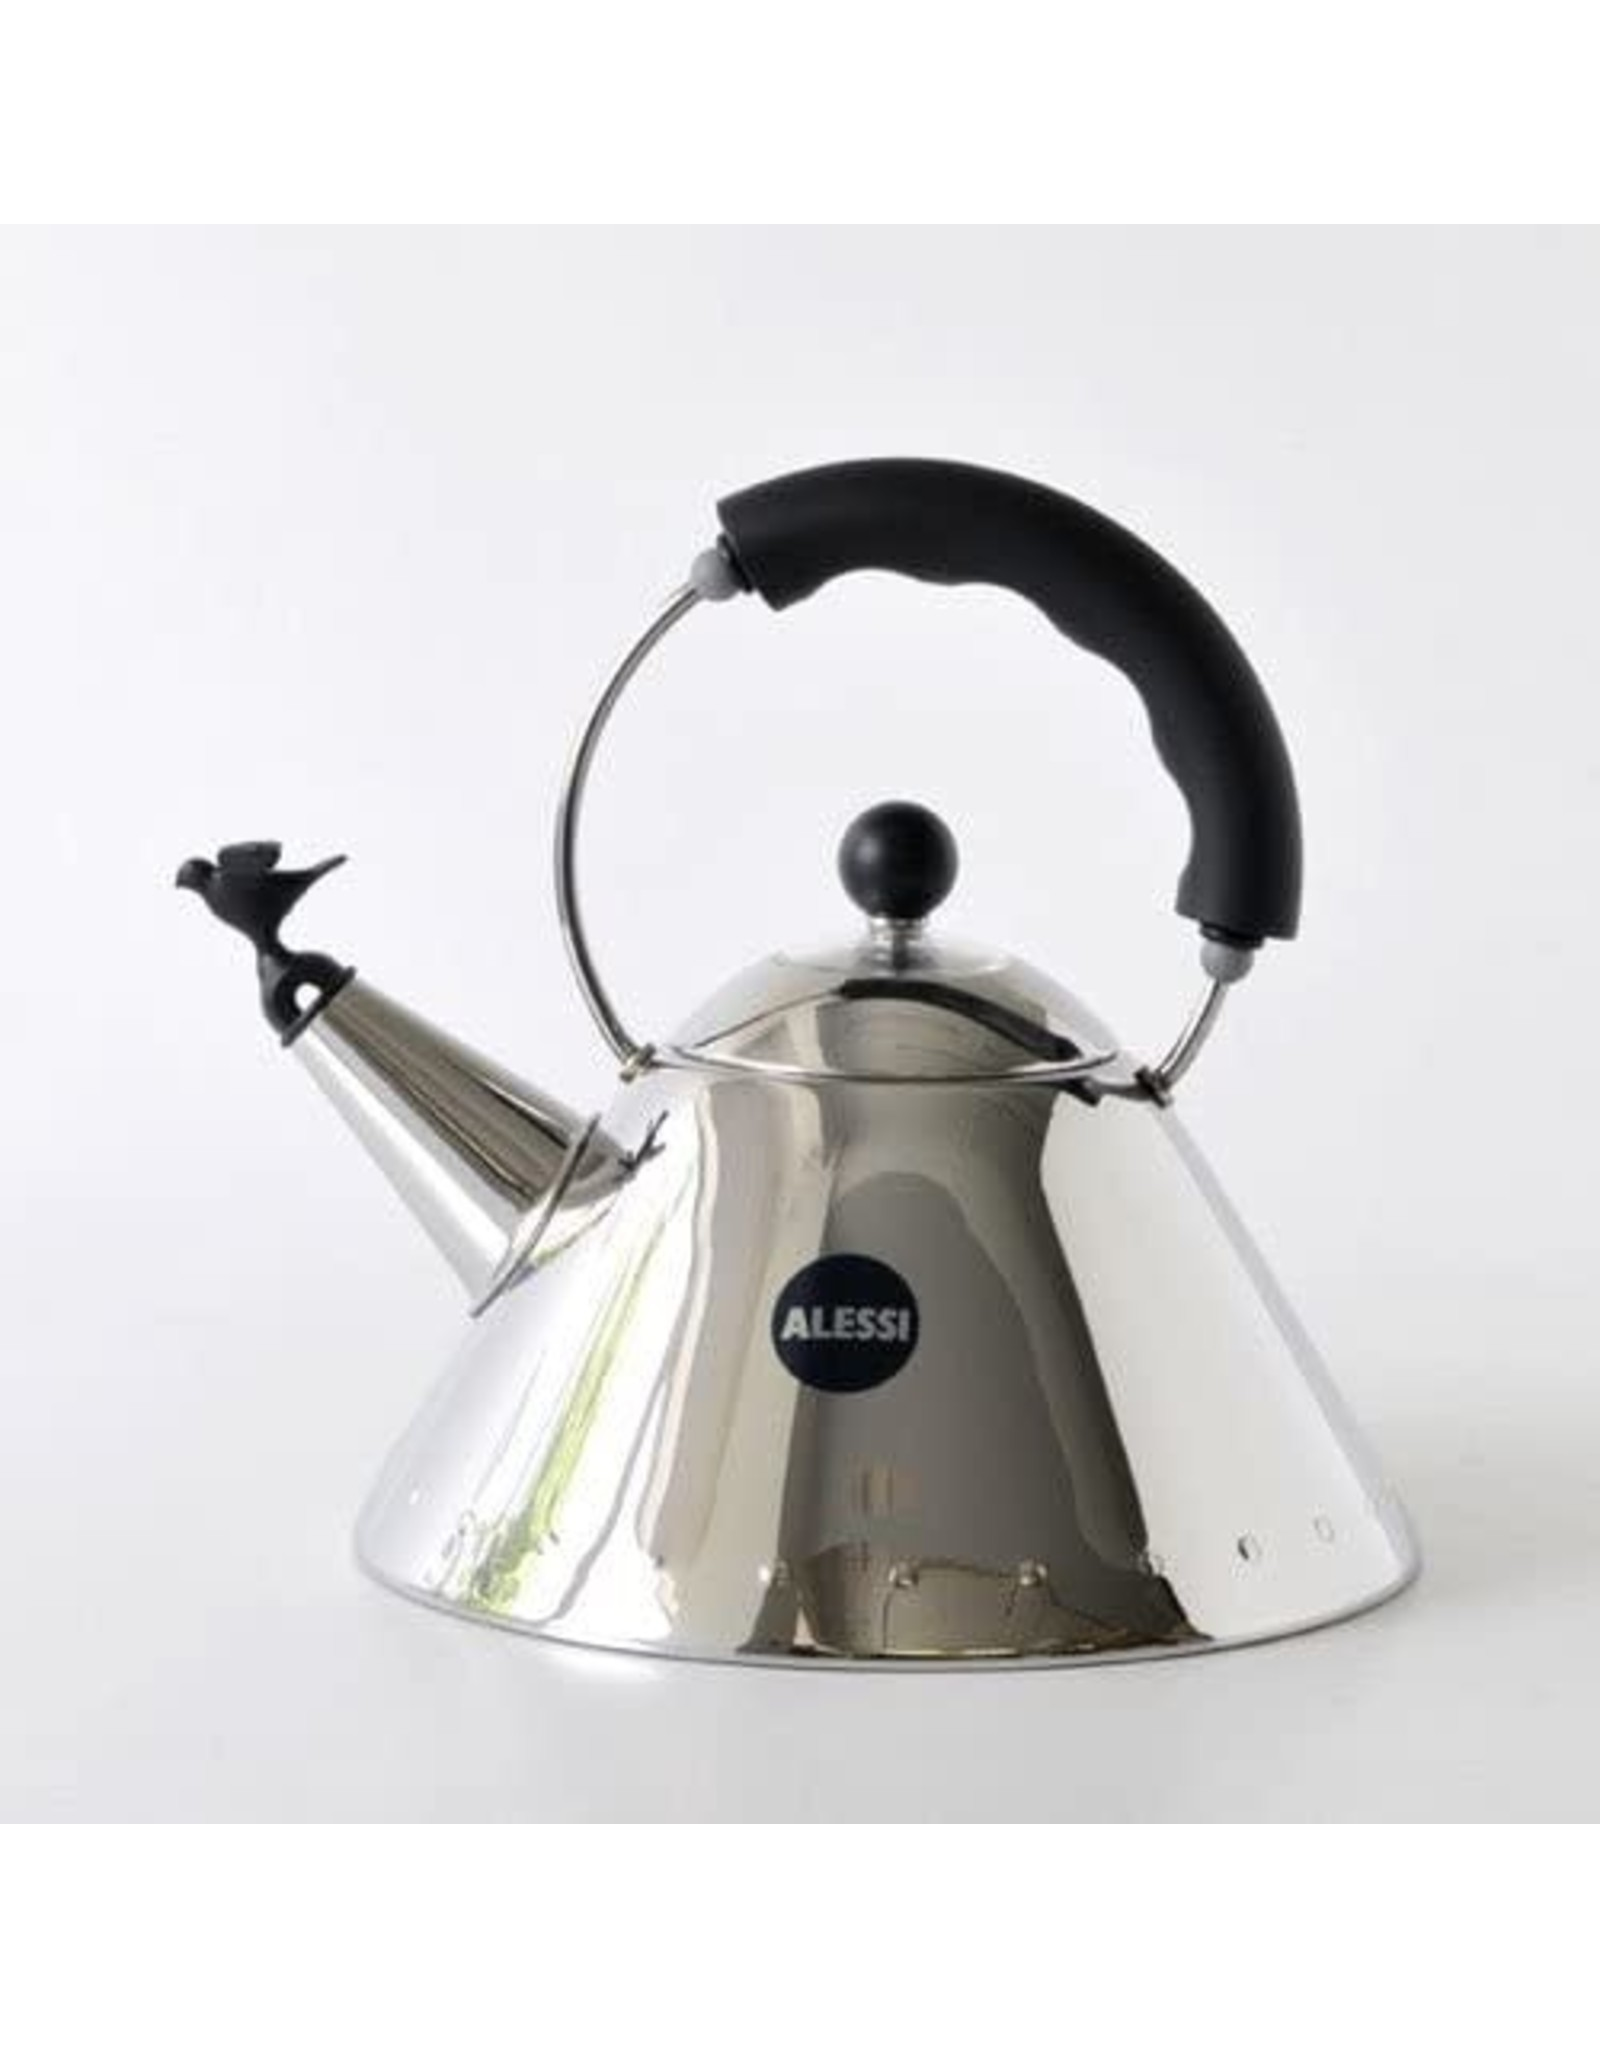 Alessi ALESSI Kettle Small Bird Shaped Whistle BLACK HANDLE